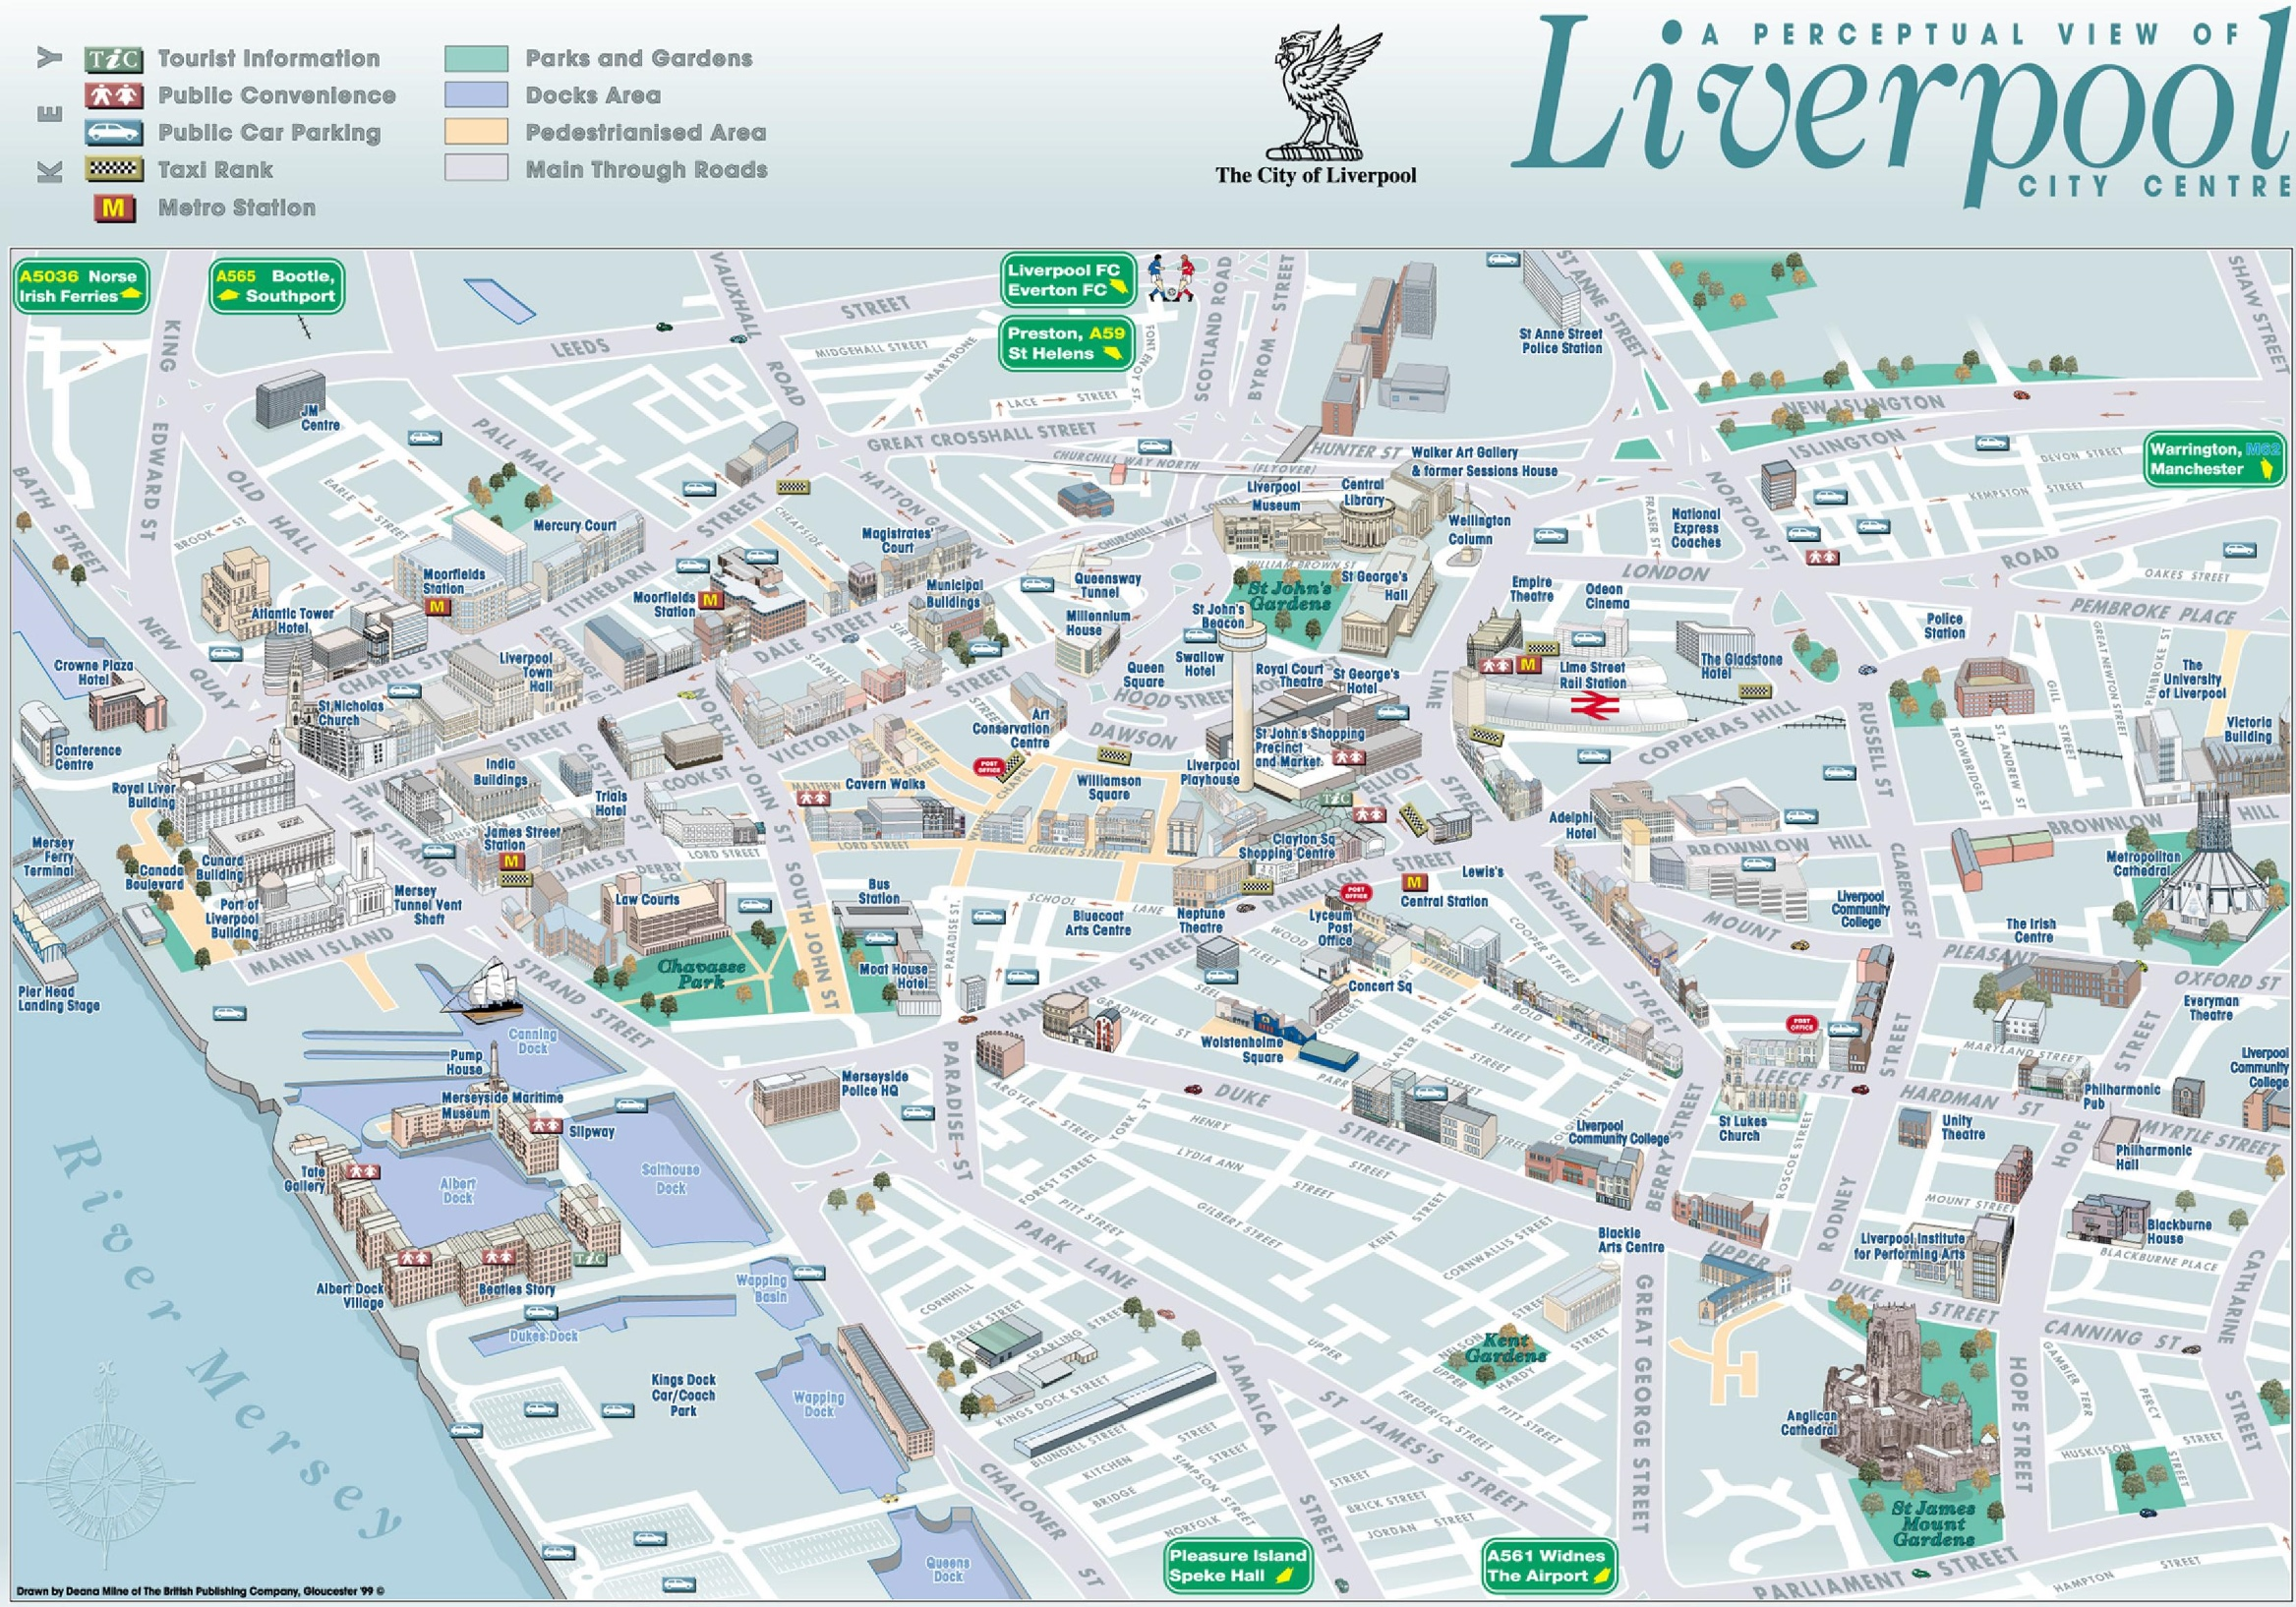 Liverpool Tourist Map Liverpool sightseeing map Liverpool Tourist Map